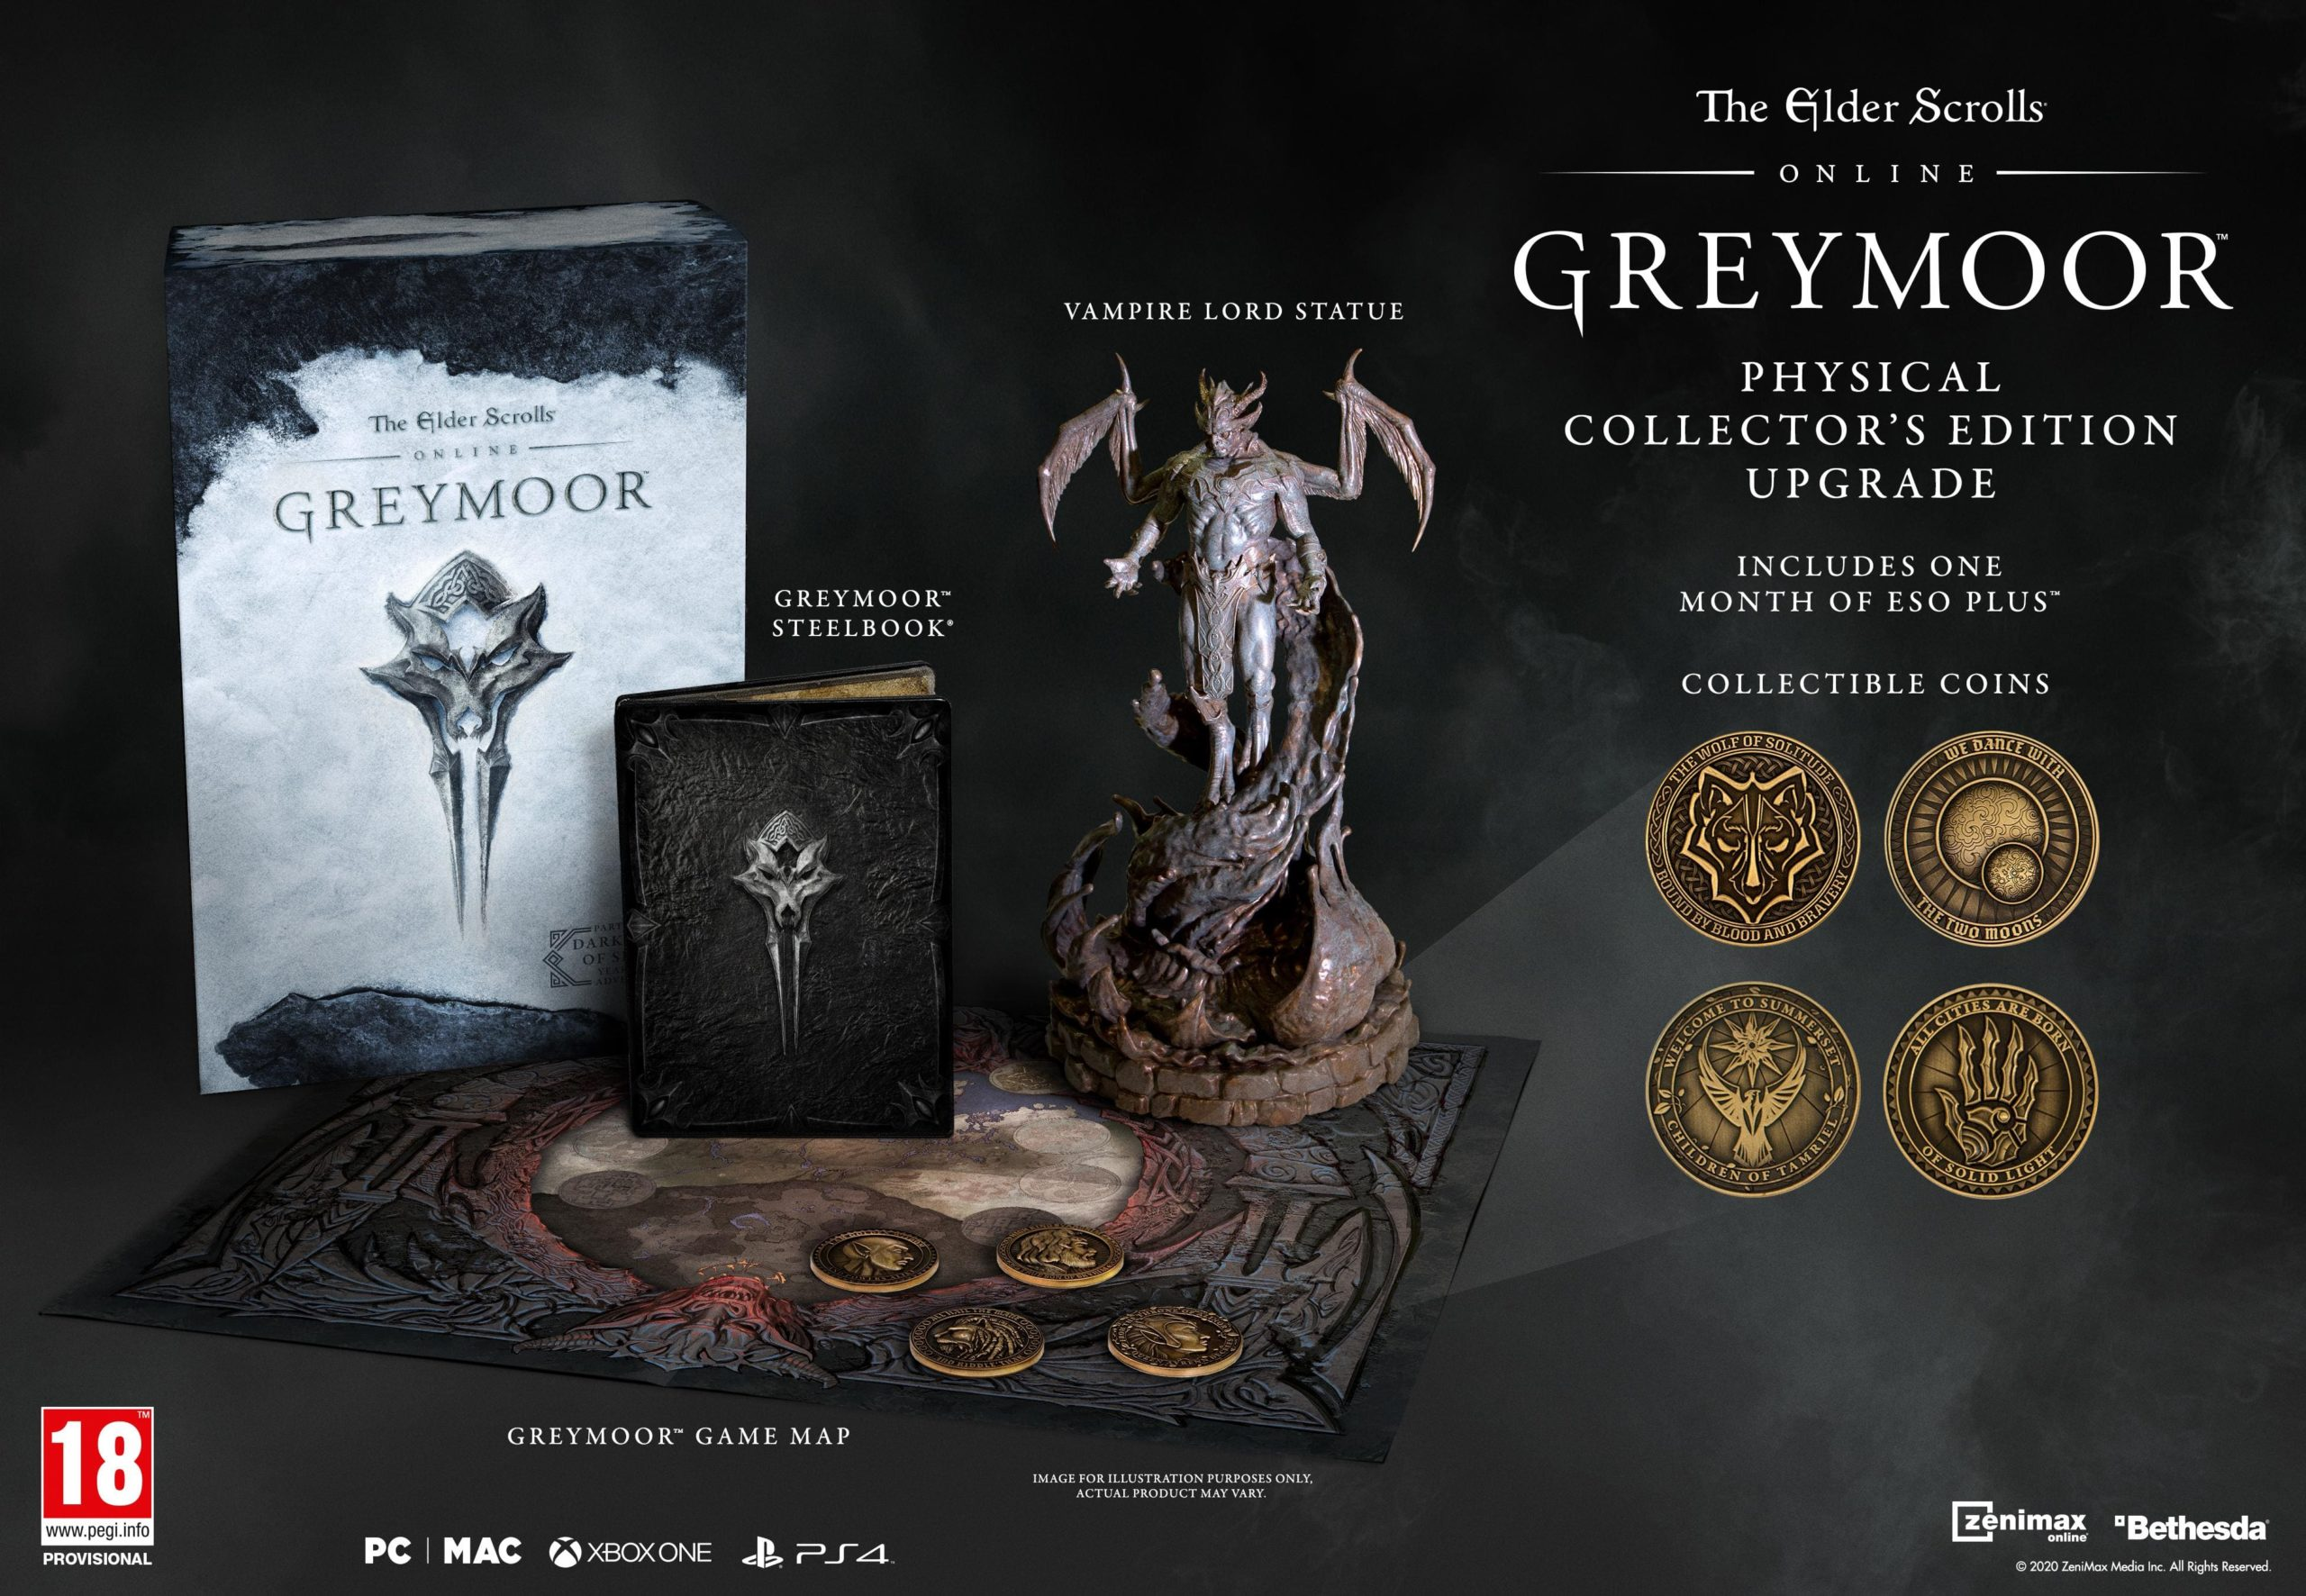 The Elder Scrolls Online Greymoor Collectors Edition